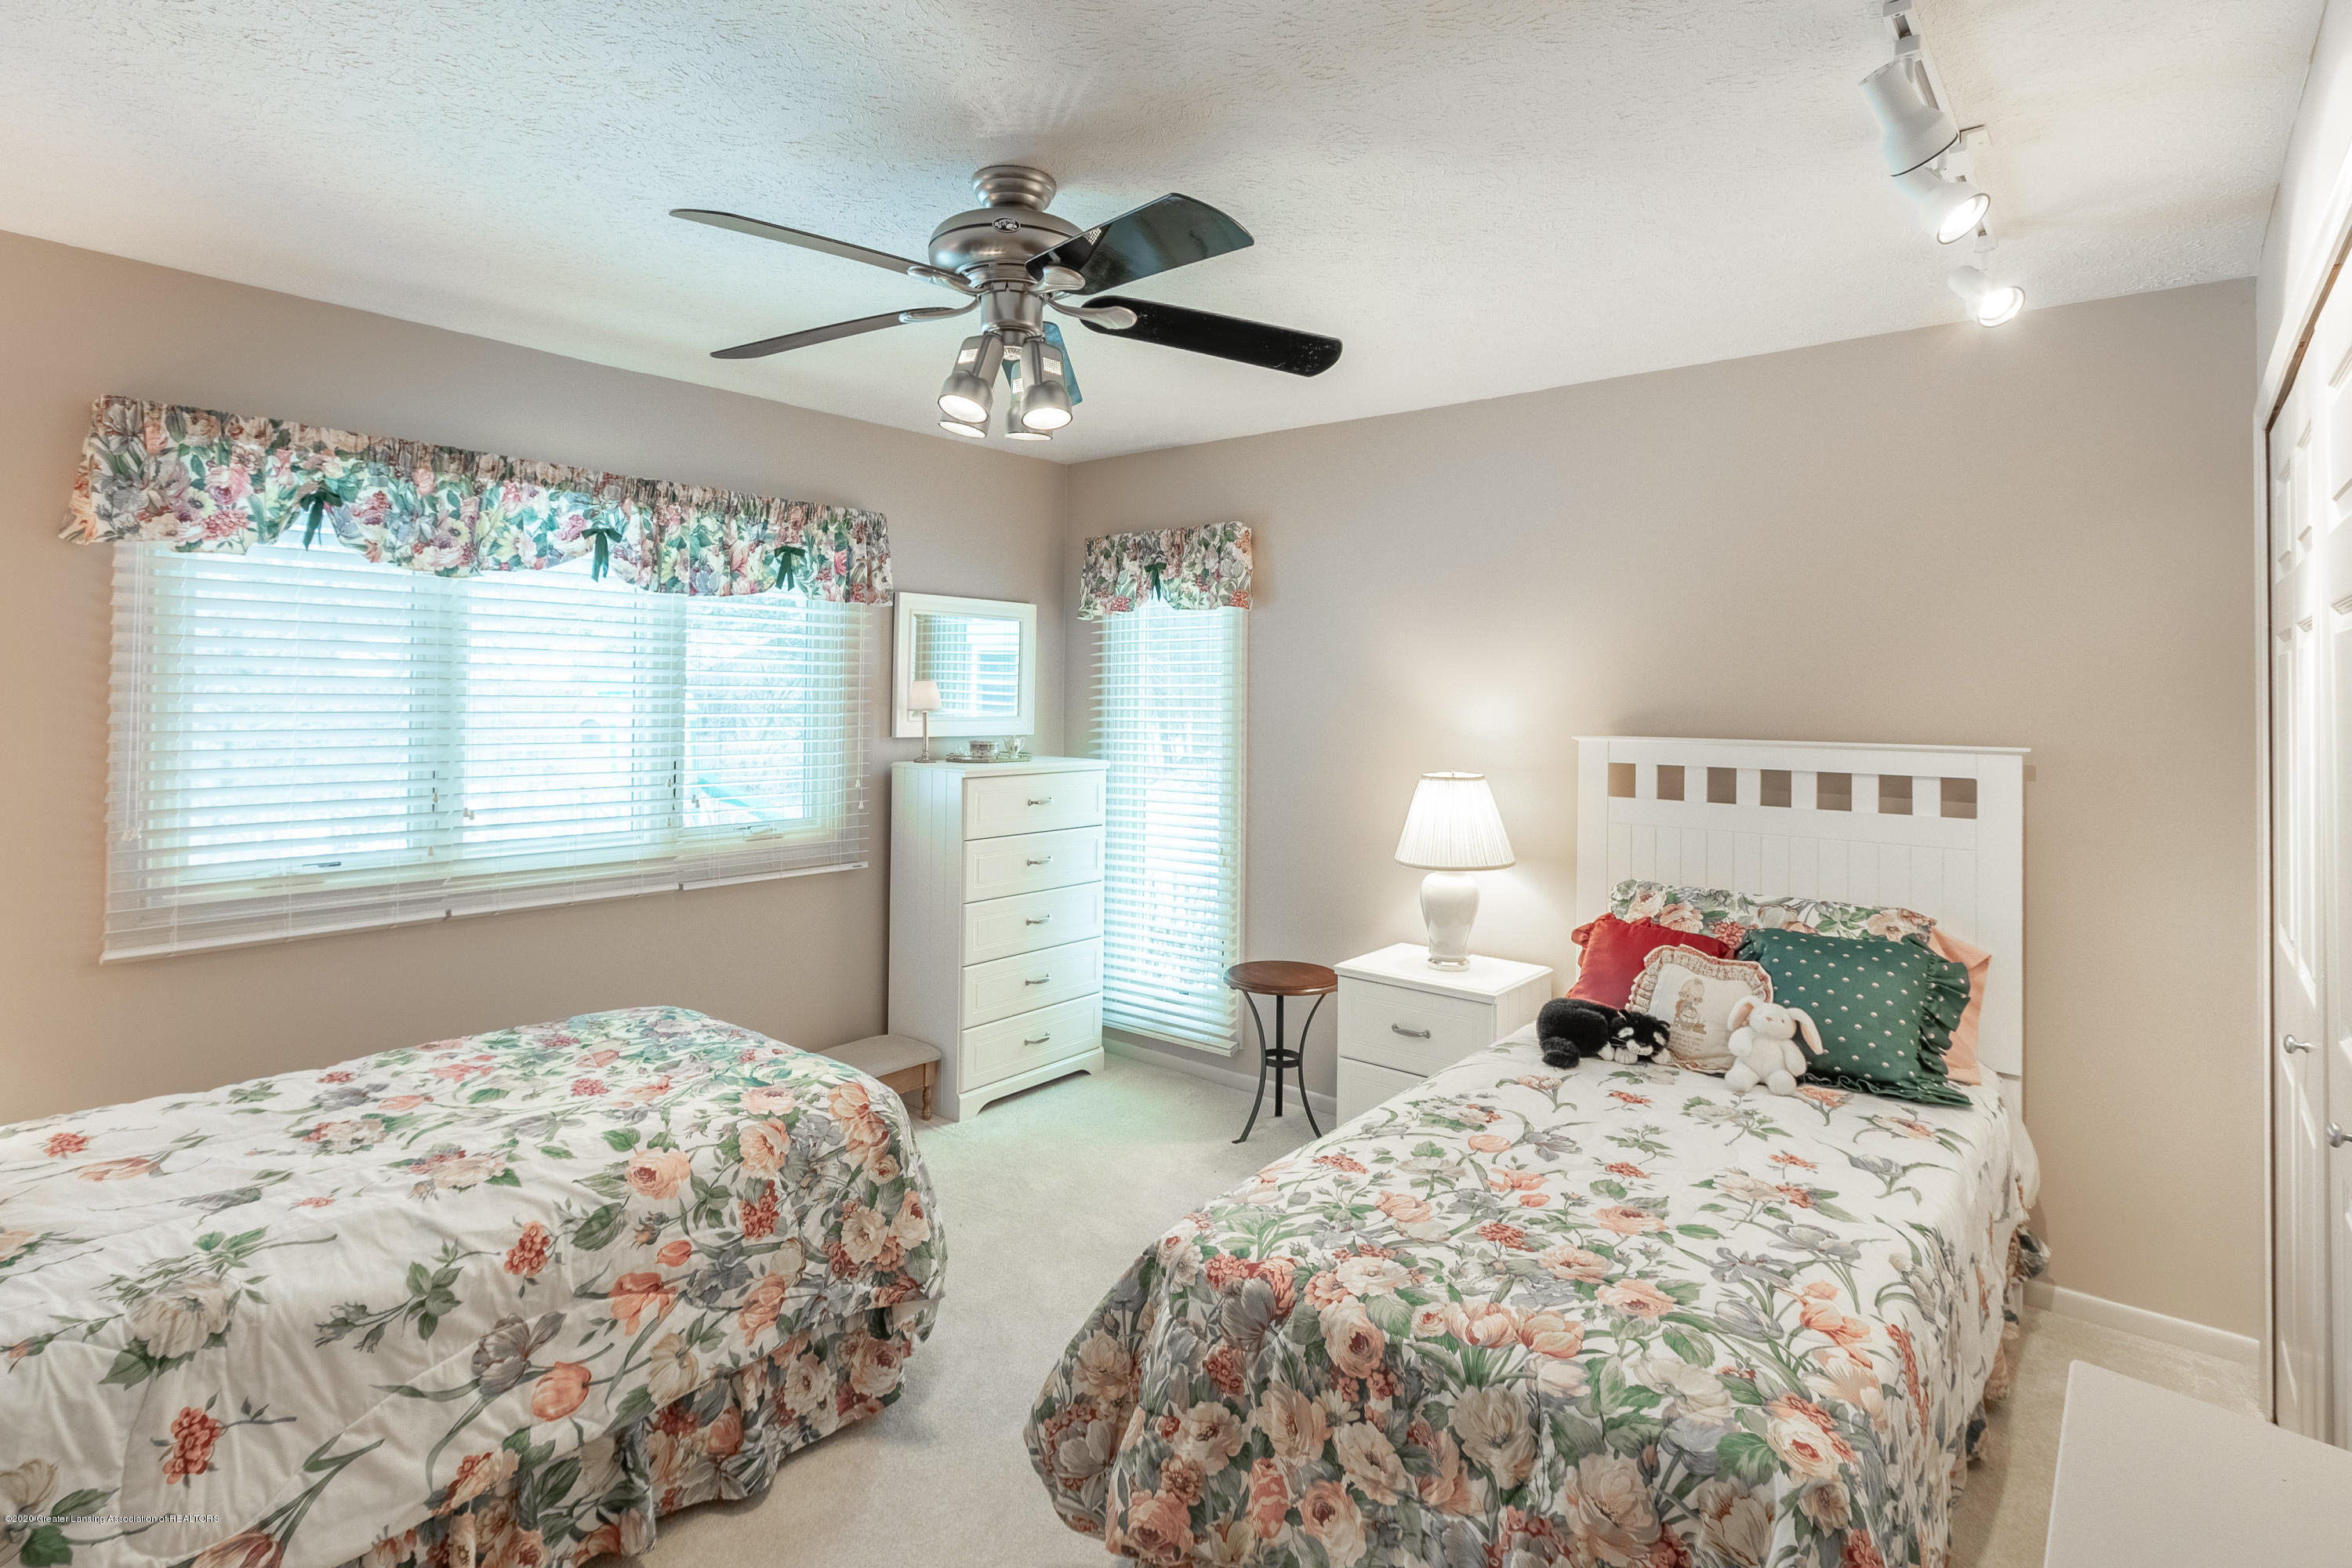 2060 Tamarack Dr - Bedroom 3 - 35